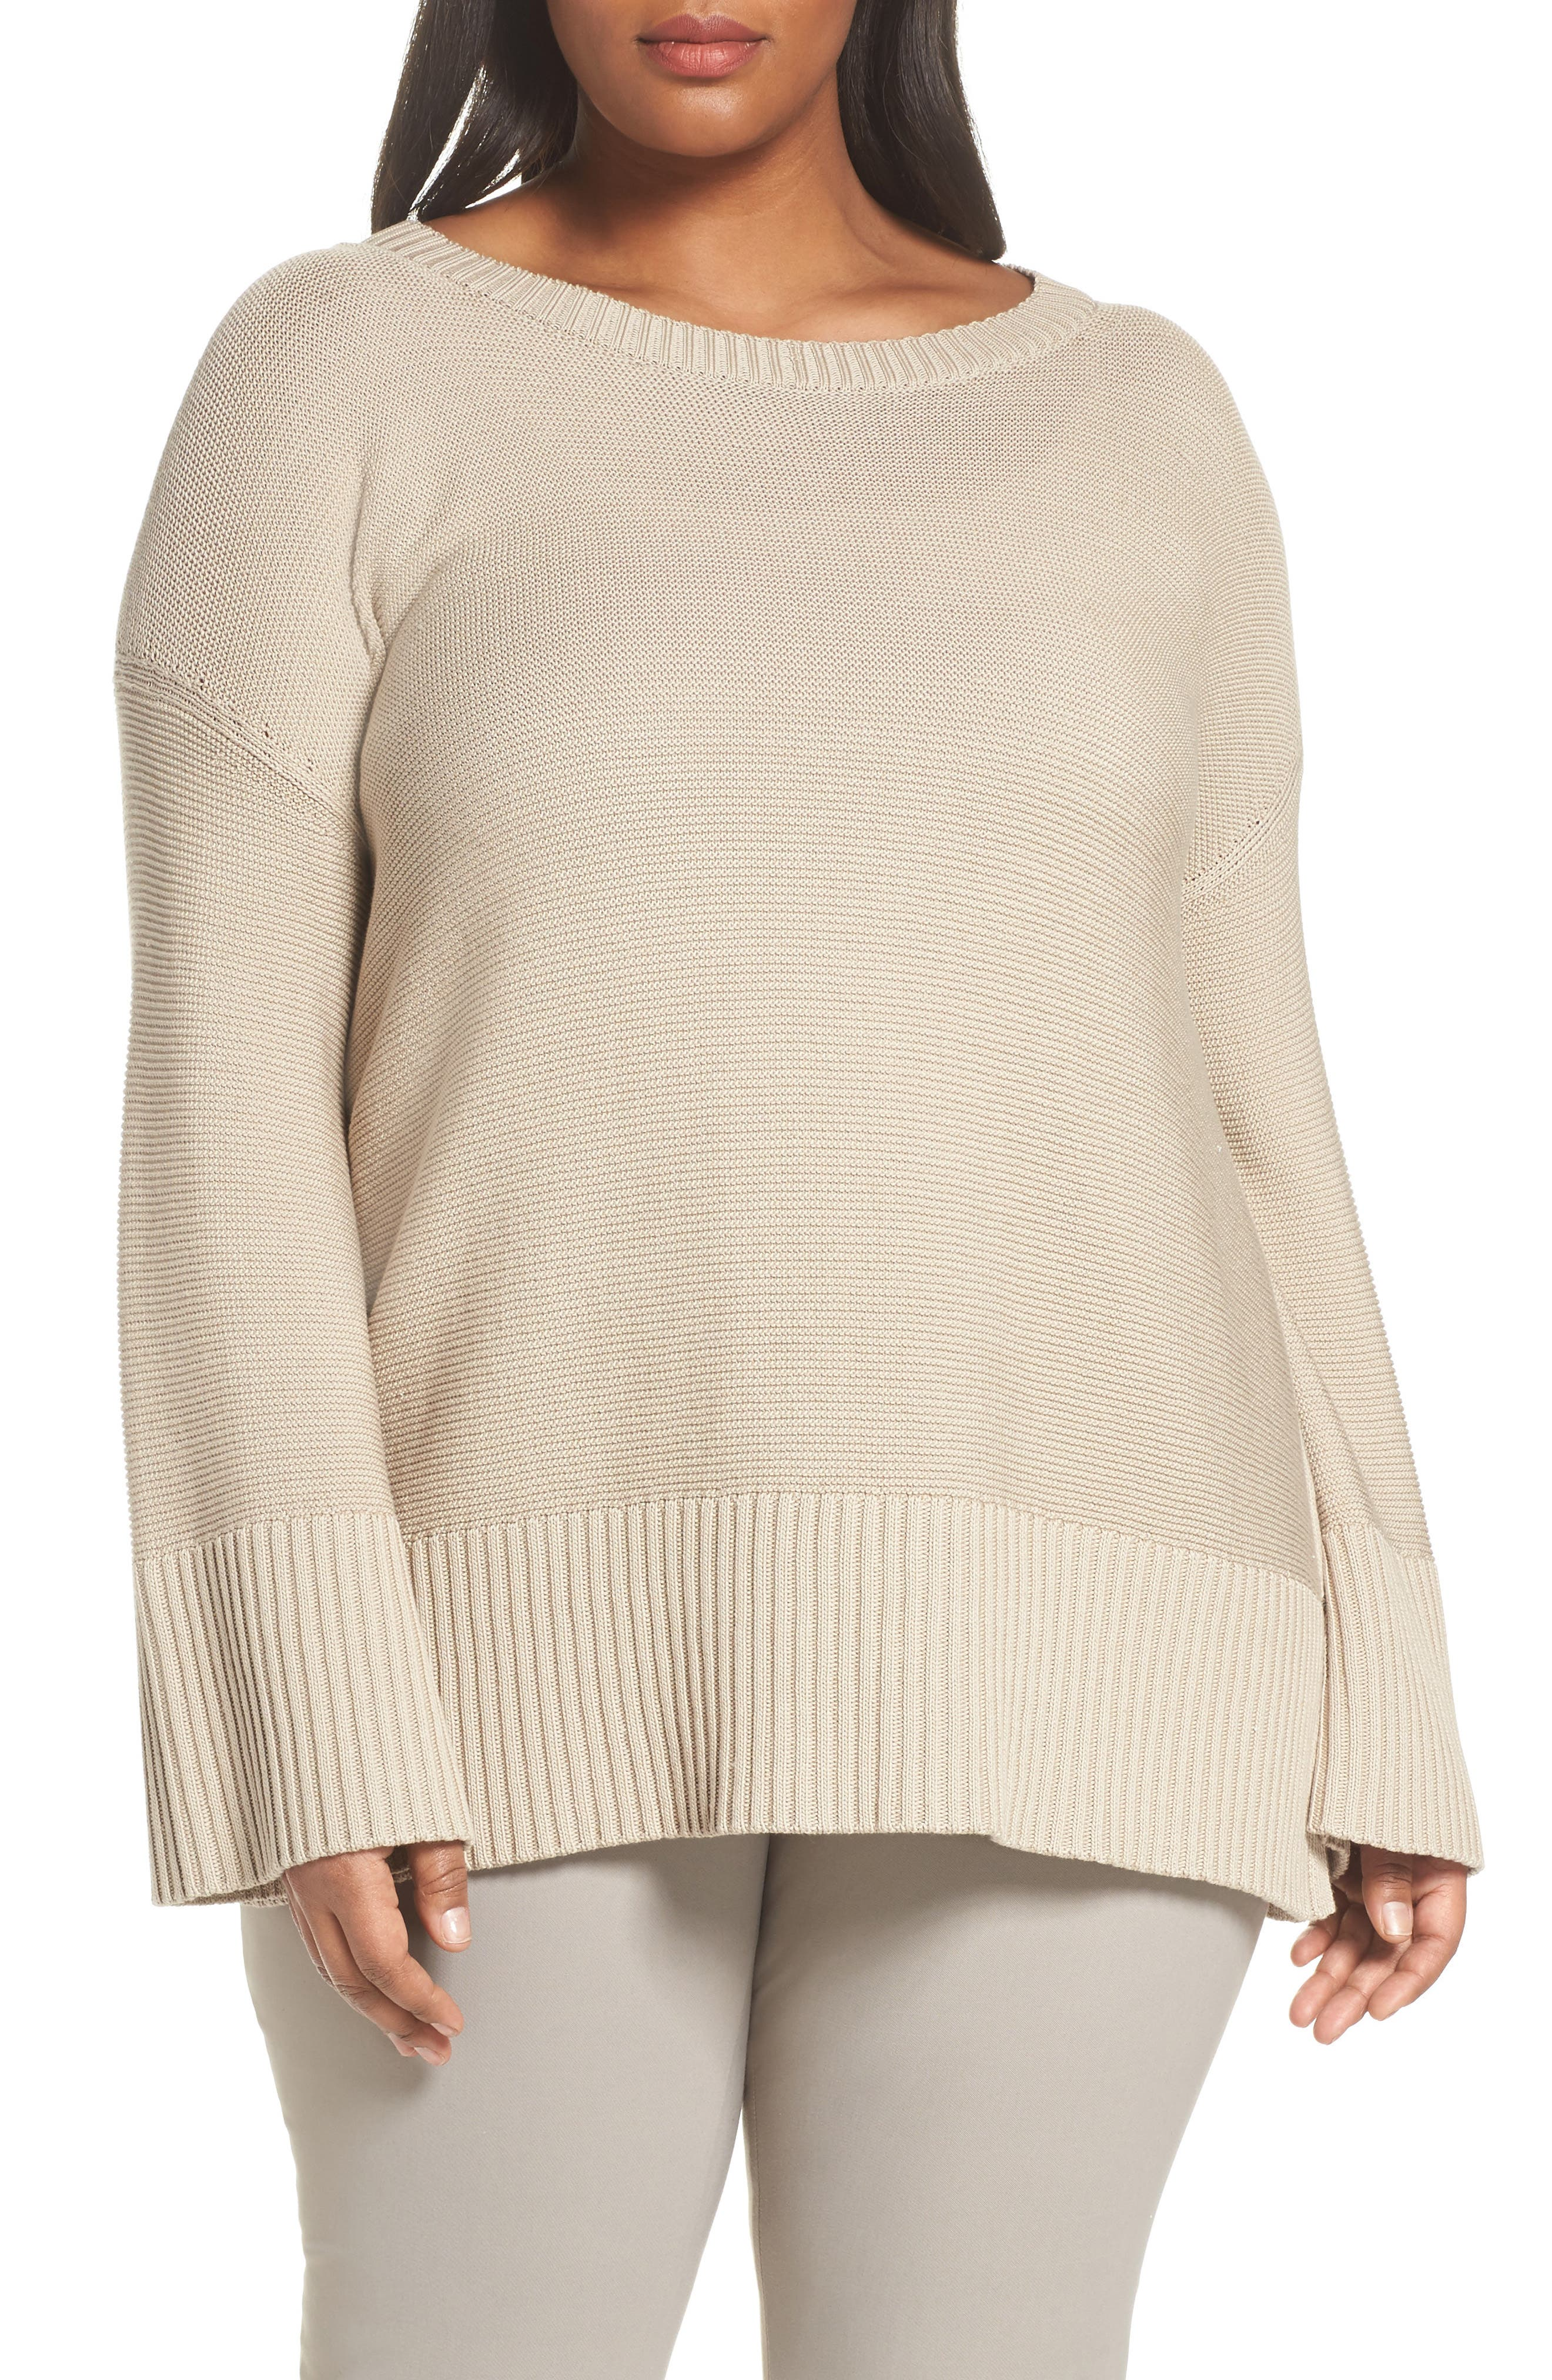 Lafayette 148 Silk and Cotton Sweater,                         Main,                         color, Khaki